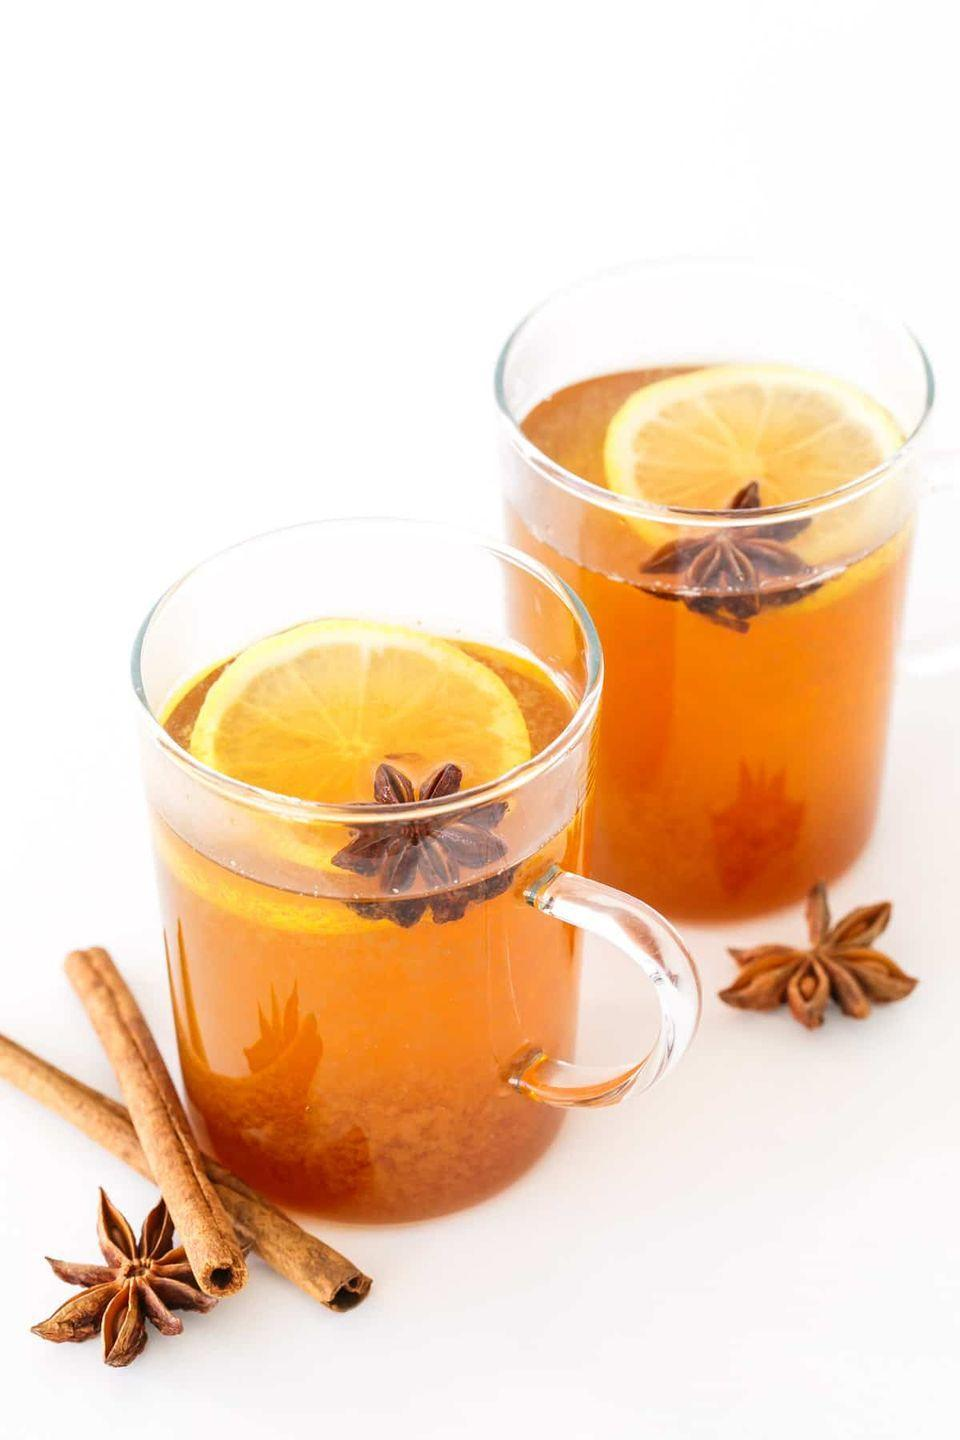 """<p>Bourbon, chamomile, tea, honey, lemon, and warm spices? This cocktail is basically comfort in a glass. </p><p><em>Get the recipe at <a href=""""https://www.loveandoliveoil.com/2016/12/spiced-chamomile-hot-toddy.html"""" rel=""""nofollow noopener"""" target=""""_blank"""" data-ylk=""""slk:Love & Olive Oil"""" class=""""link rapid-noclick-resp"""">Love & Olive Oil</a>. </em><br></p>"""